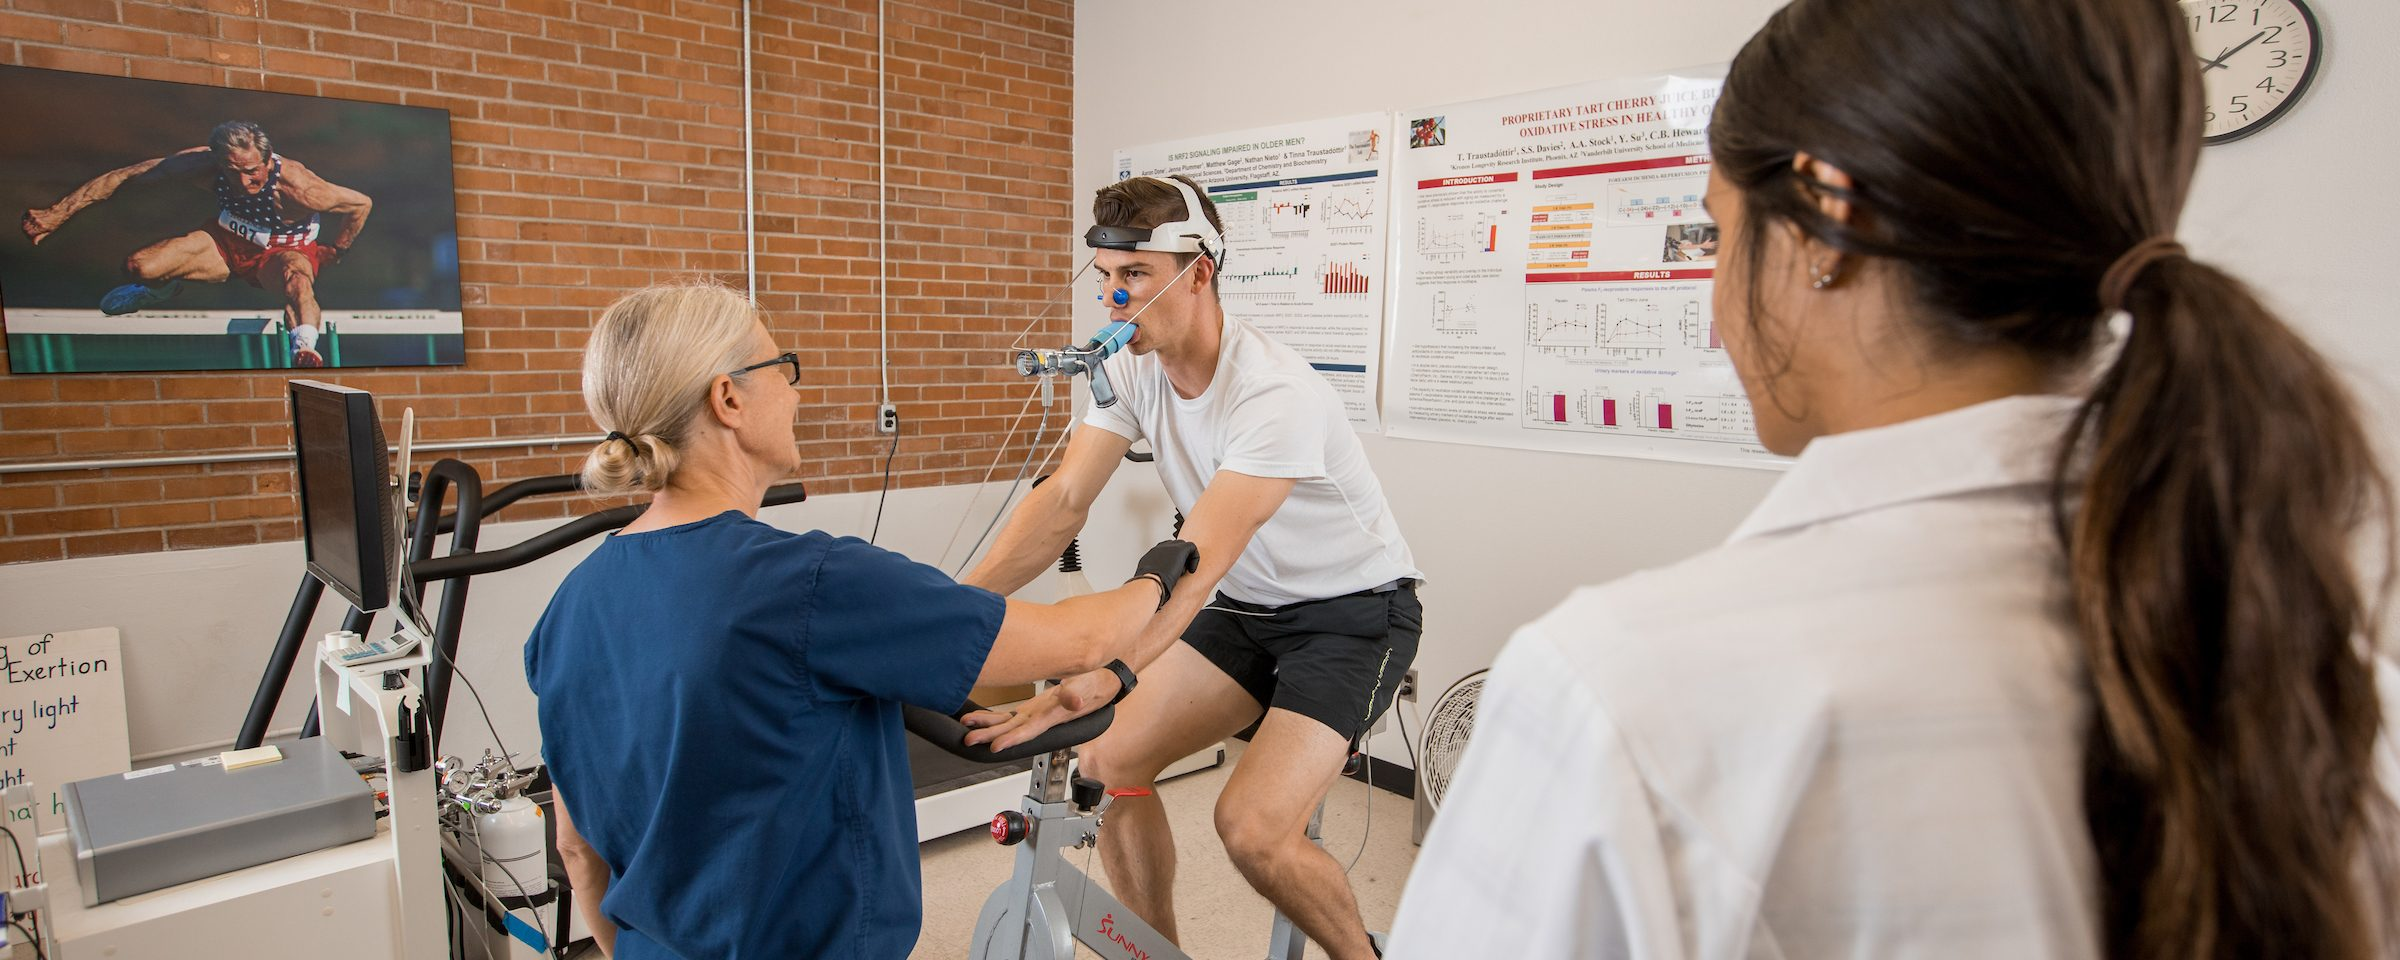 professor and student perform an exertion test